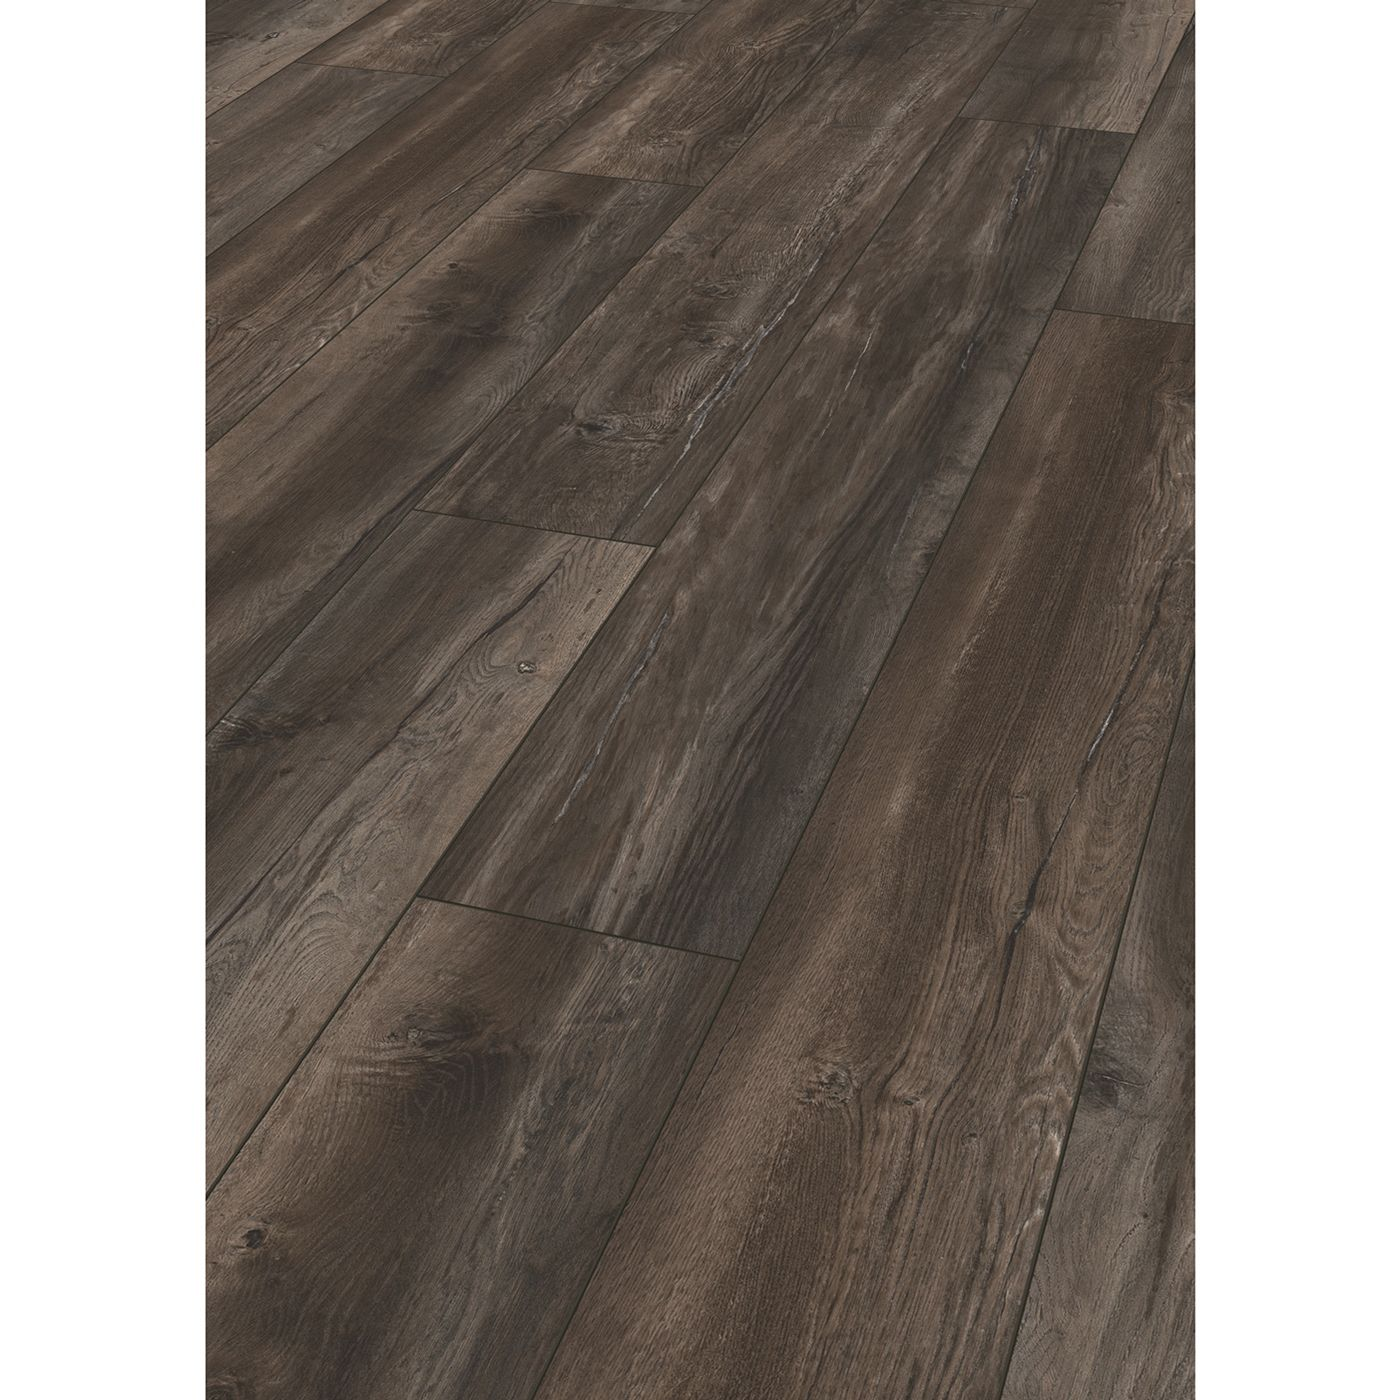 Toklo By Swiss Krono Laminate 12mm Robusto Collection Floating Floor Flooring Laminate Flooring